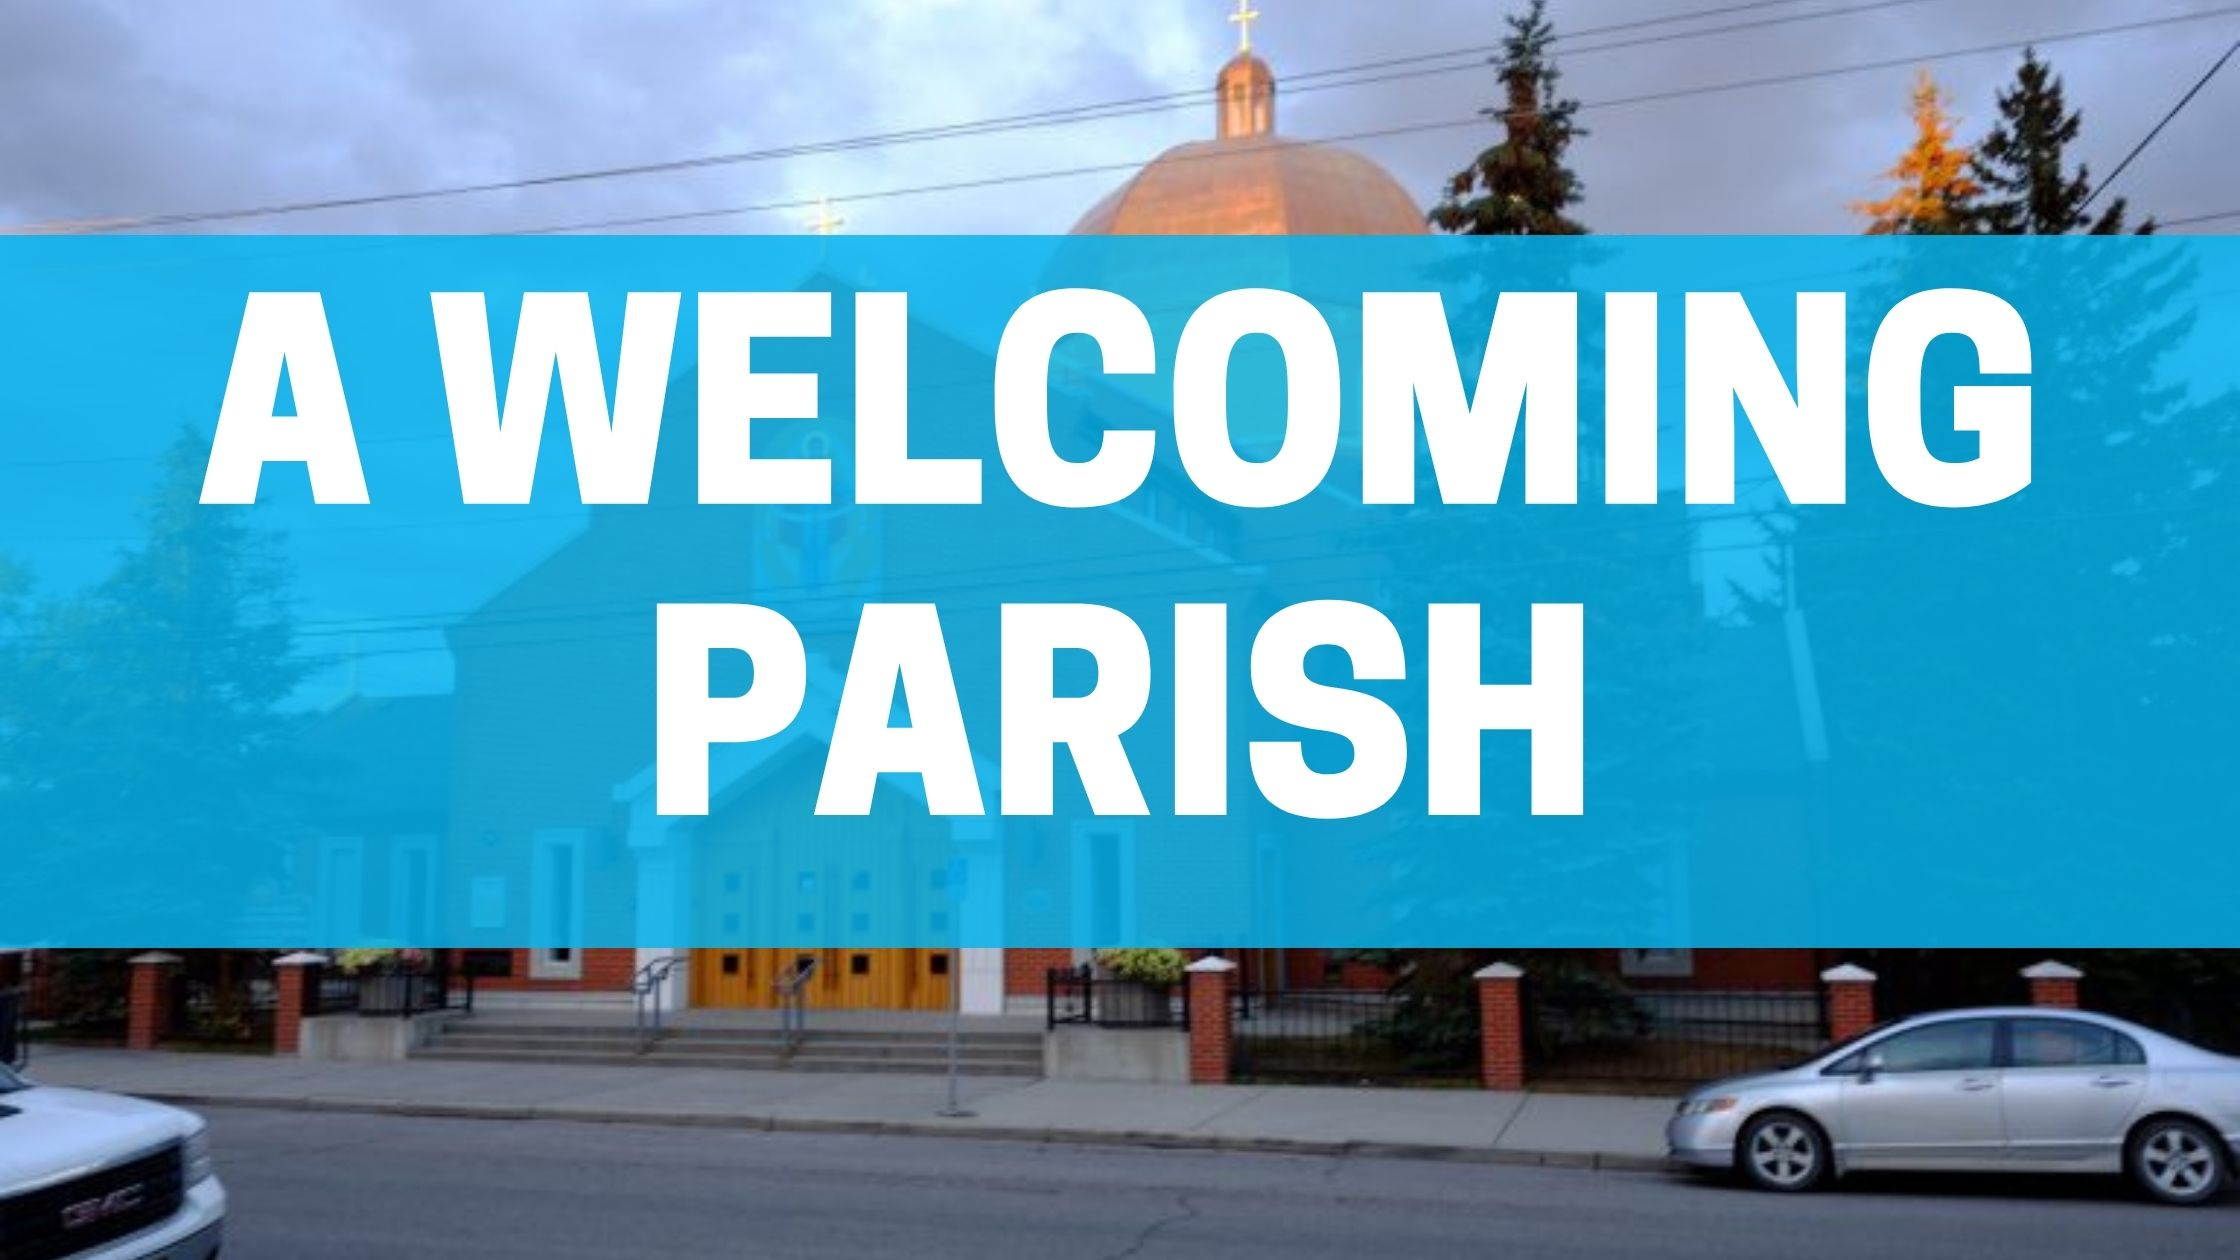 Become a Welcoming Catholic Parish